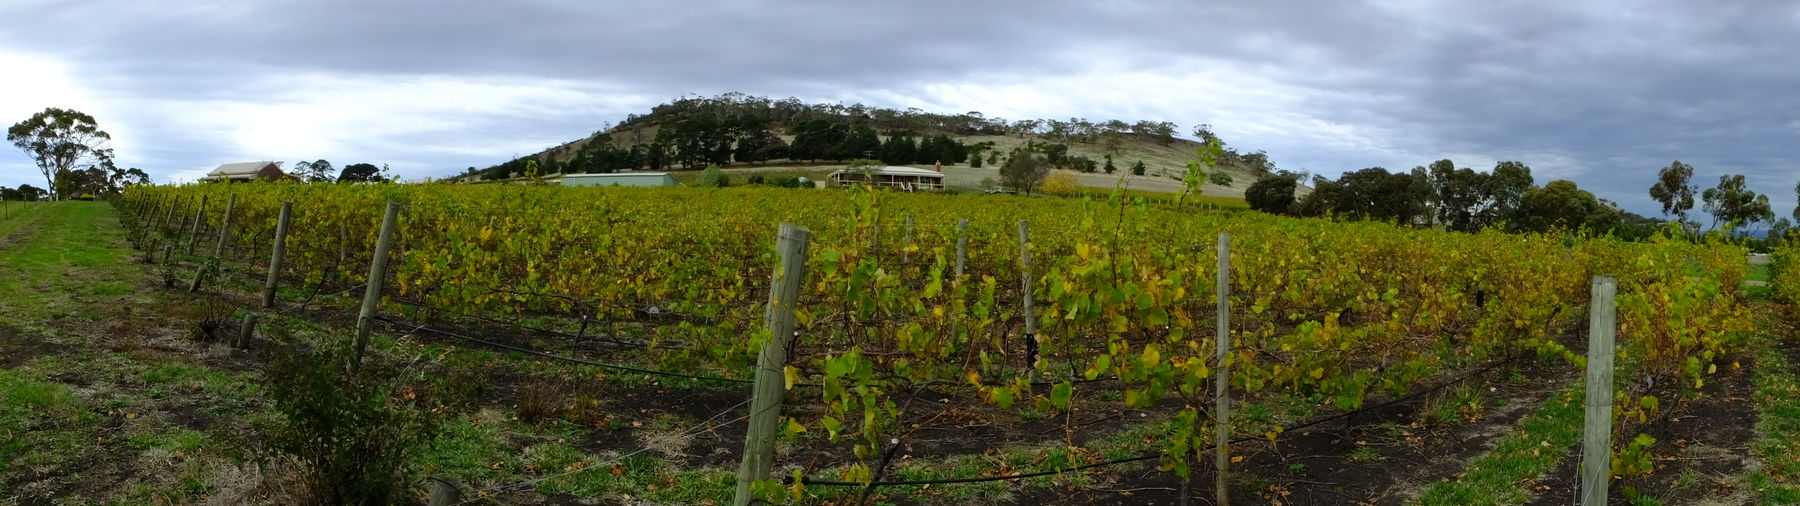 Melancholic Landscapes The Calmness Within Winery